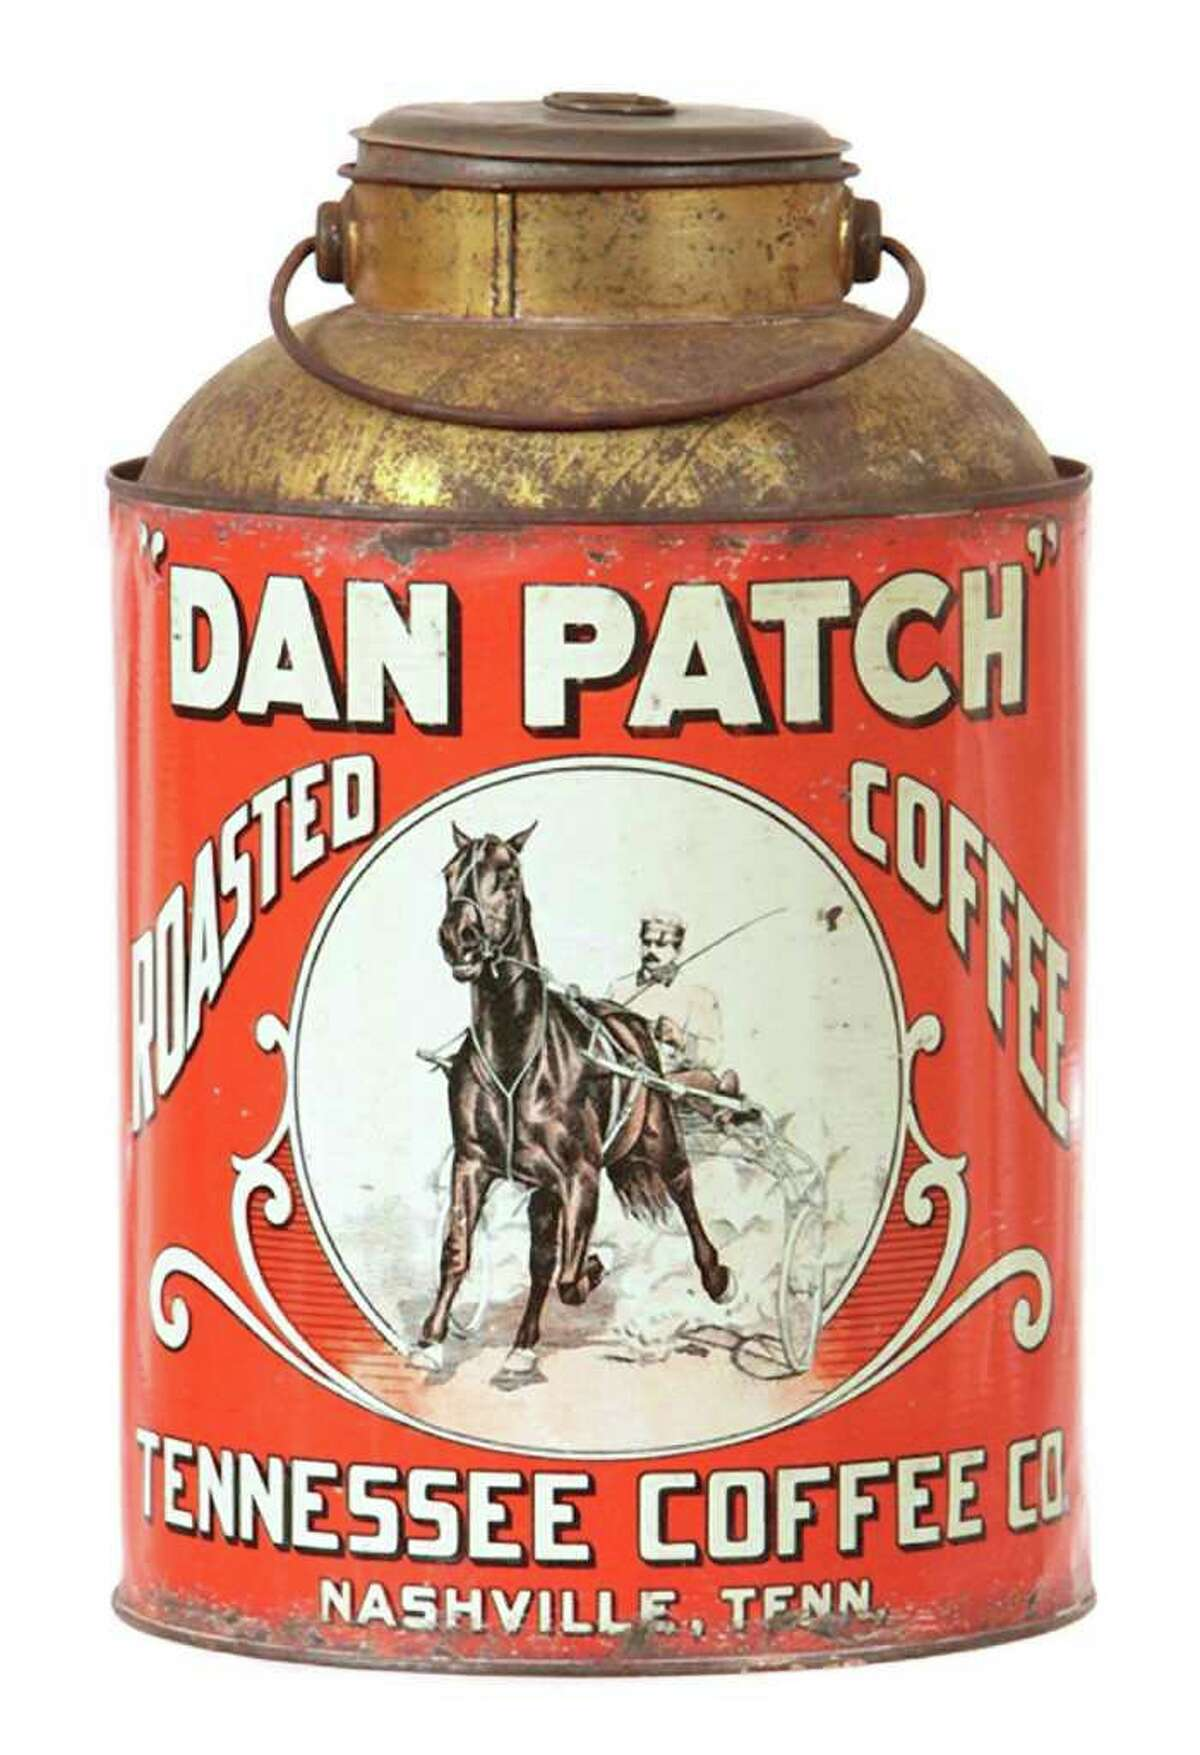 Dan Patch, a famous pacer, is pictured on this coffee tin. The horse was a celebrity in the early 1900s. Today his fame lives on in collectibles and, of course, in harness-racing record books. William Morford auctions, in Cazenovia, N.Y., sold this 11-inch tin for $2,035.